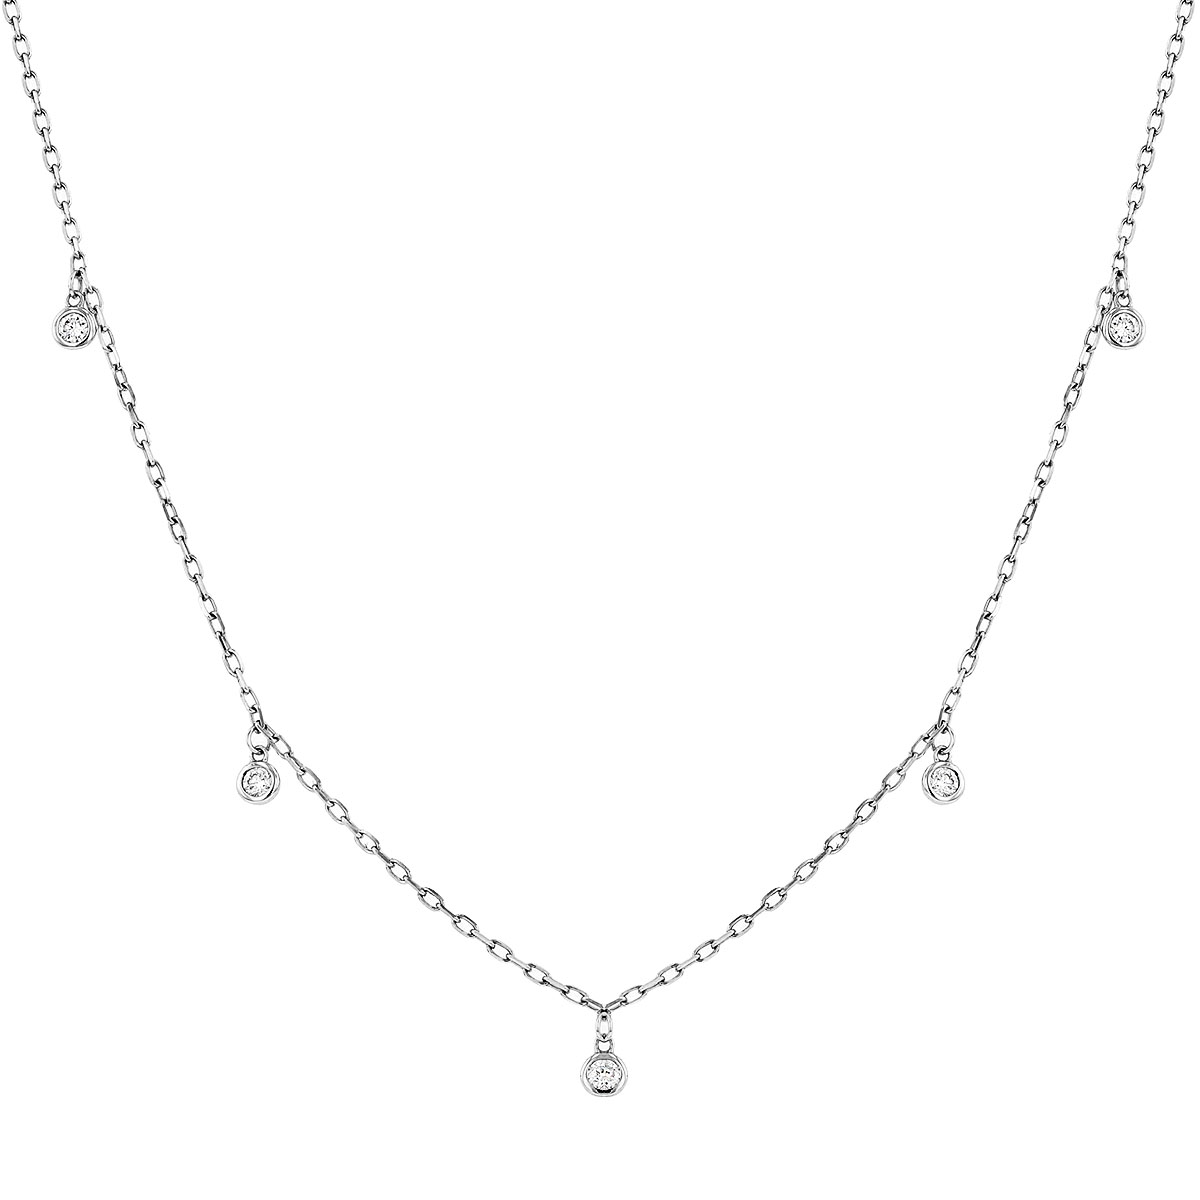 Radiance Collection Diamond Drop & White Gold Necklace